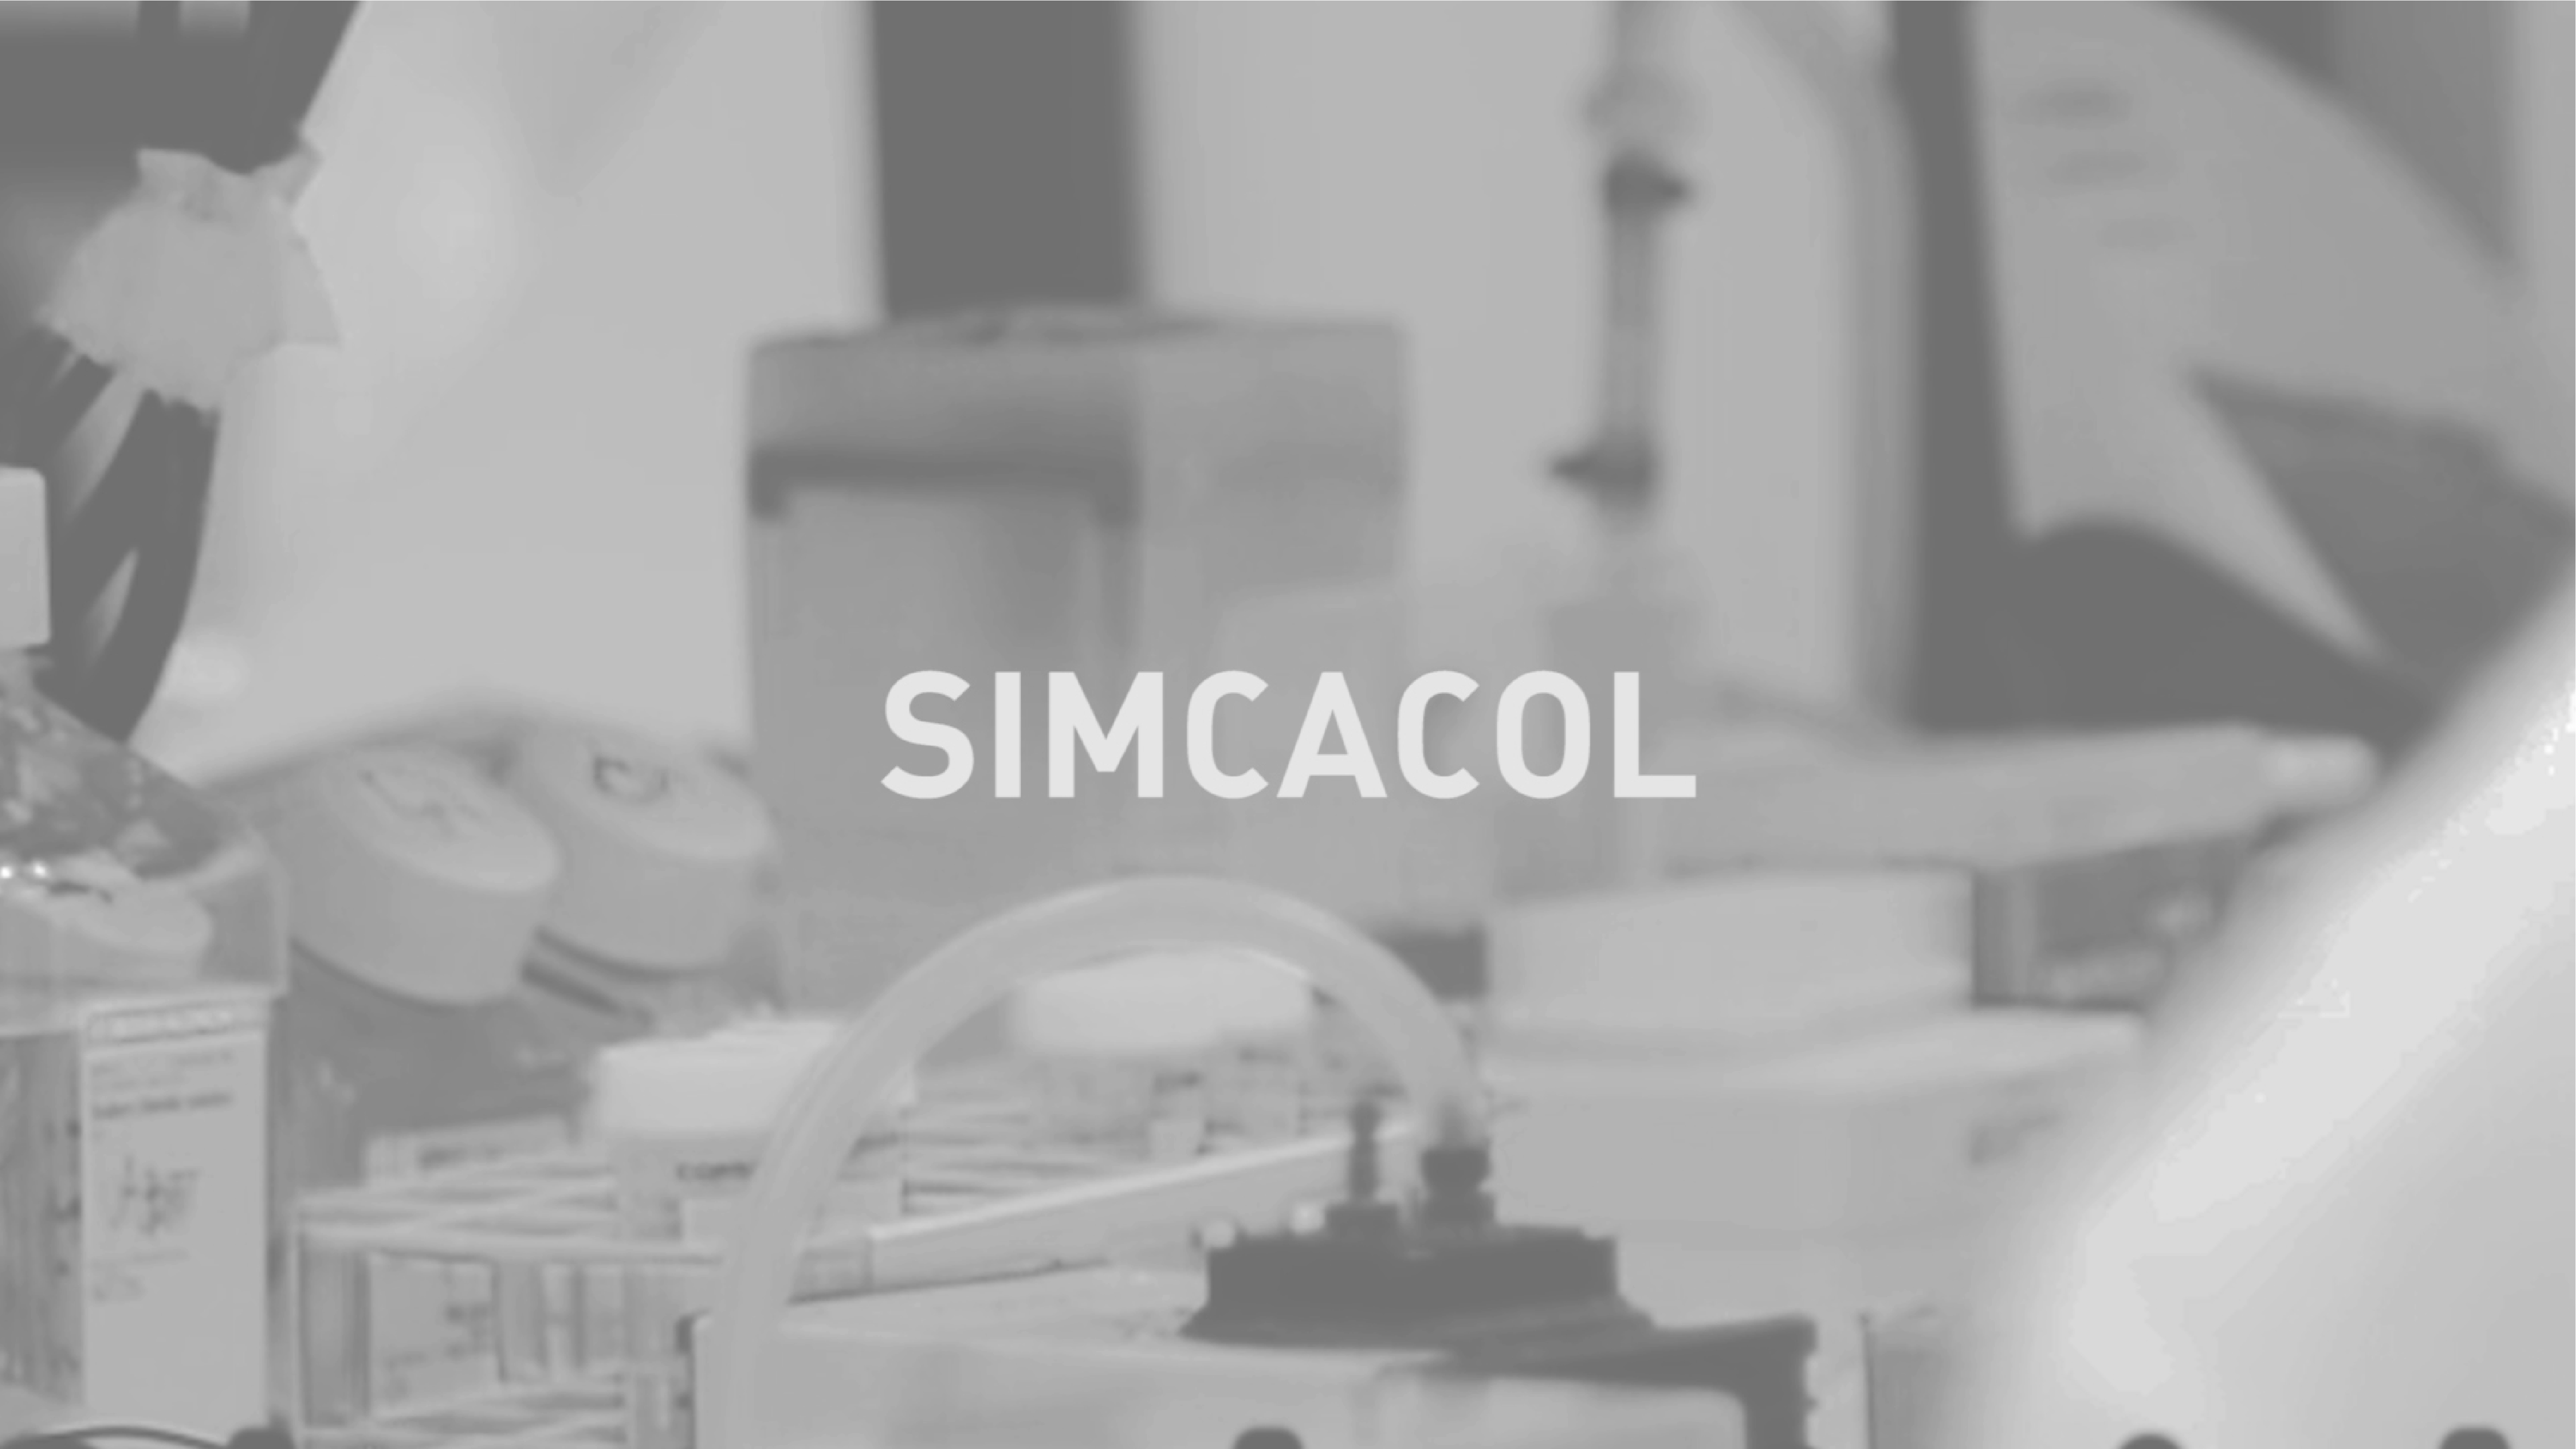 SIMCACOL